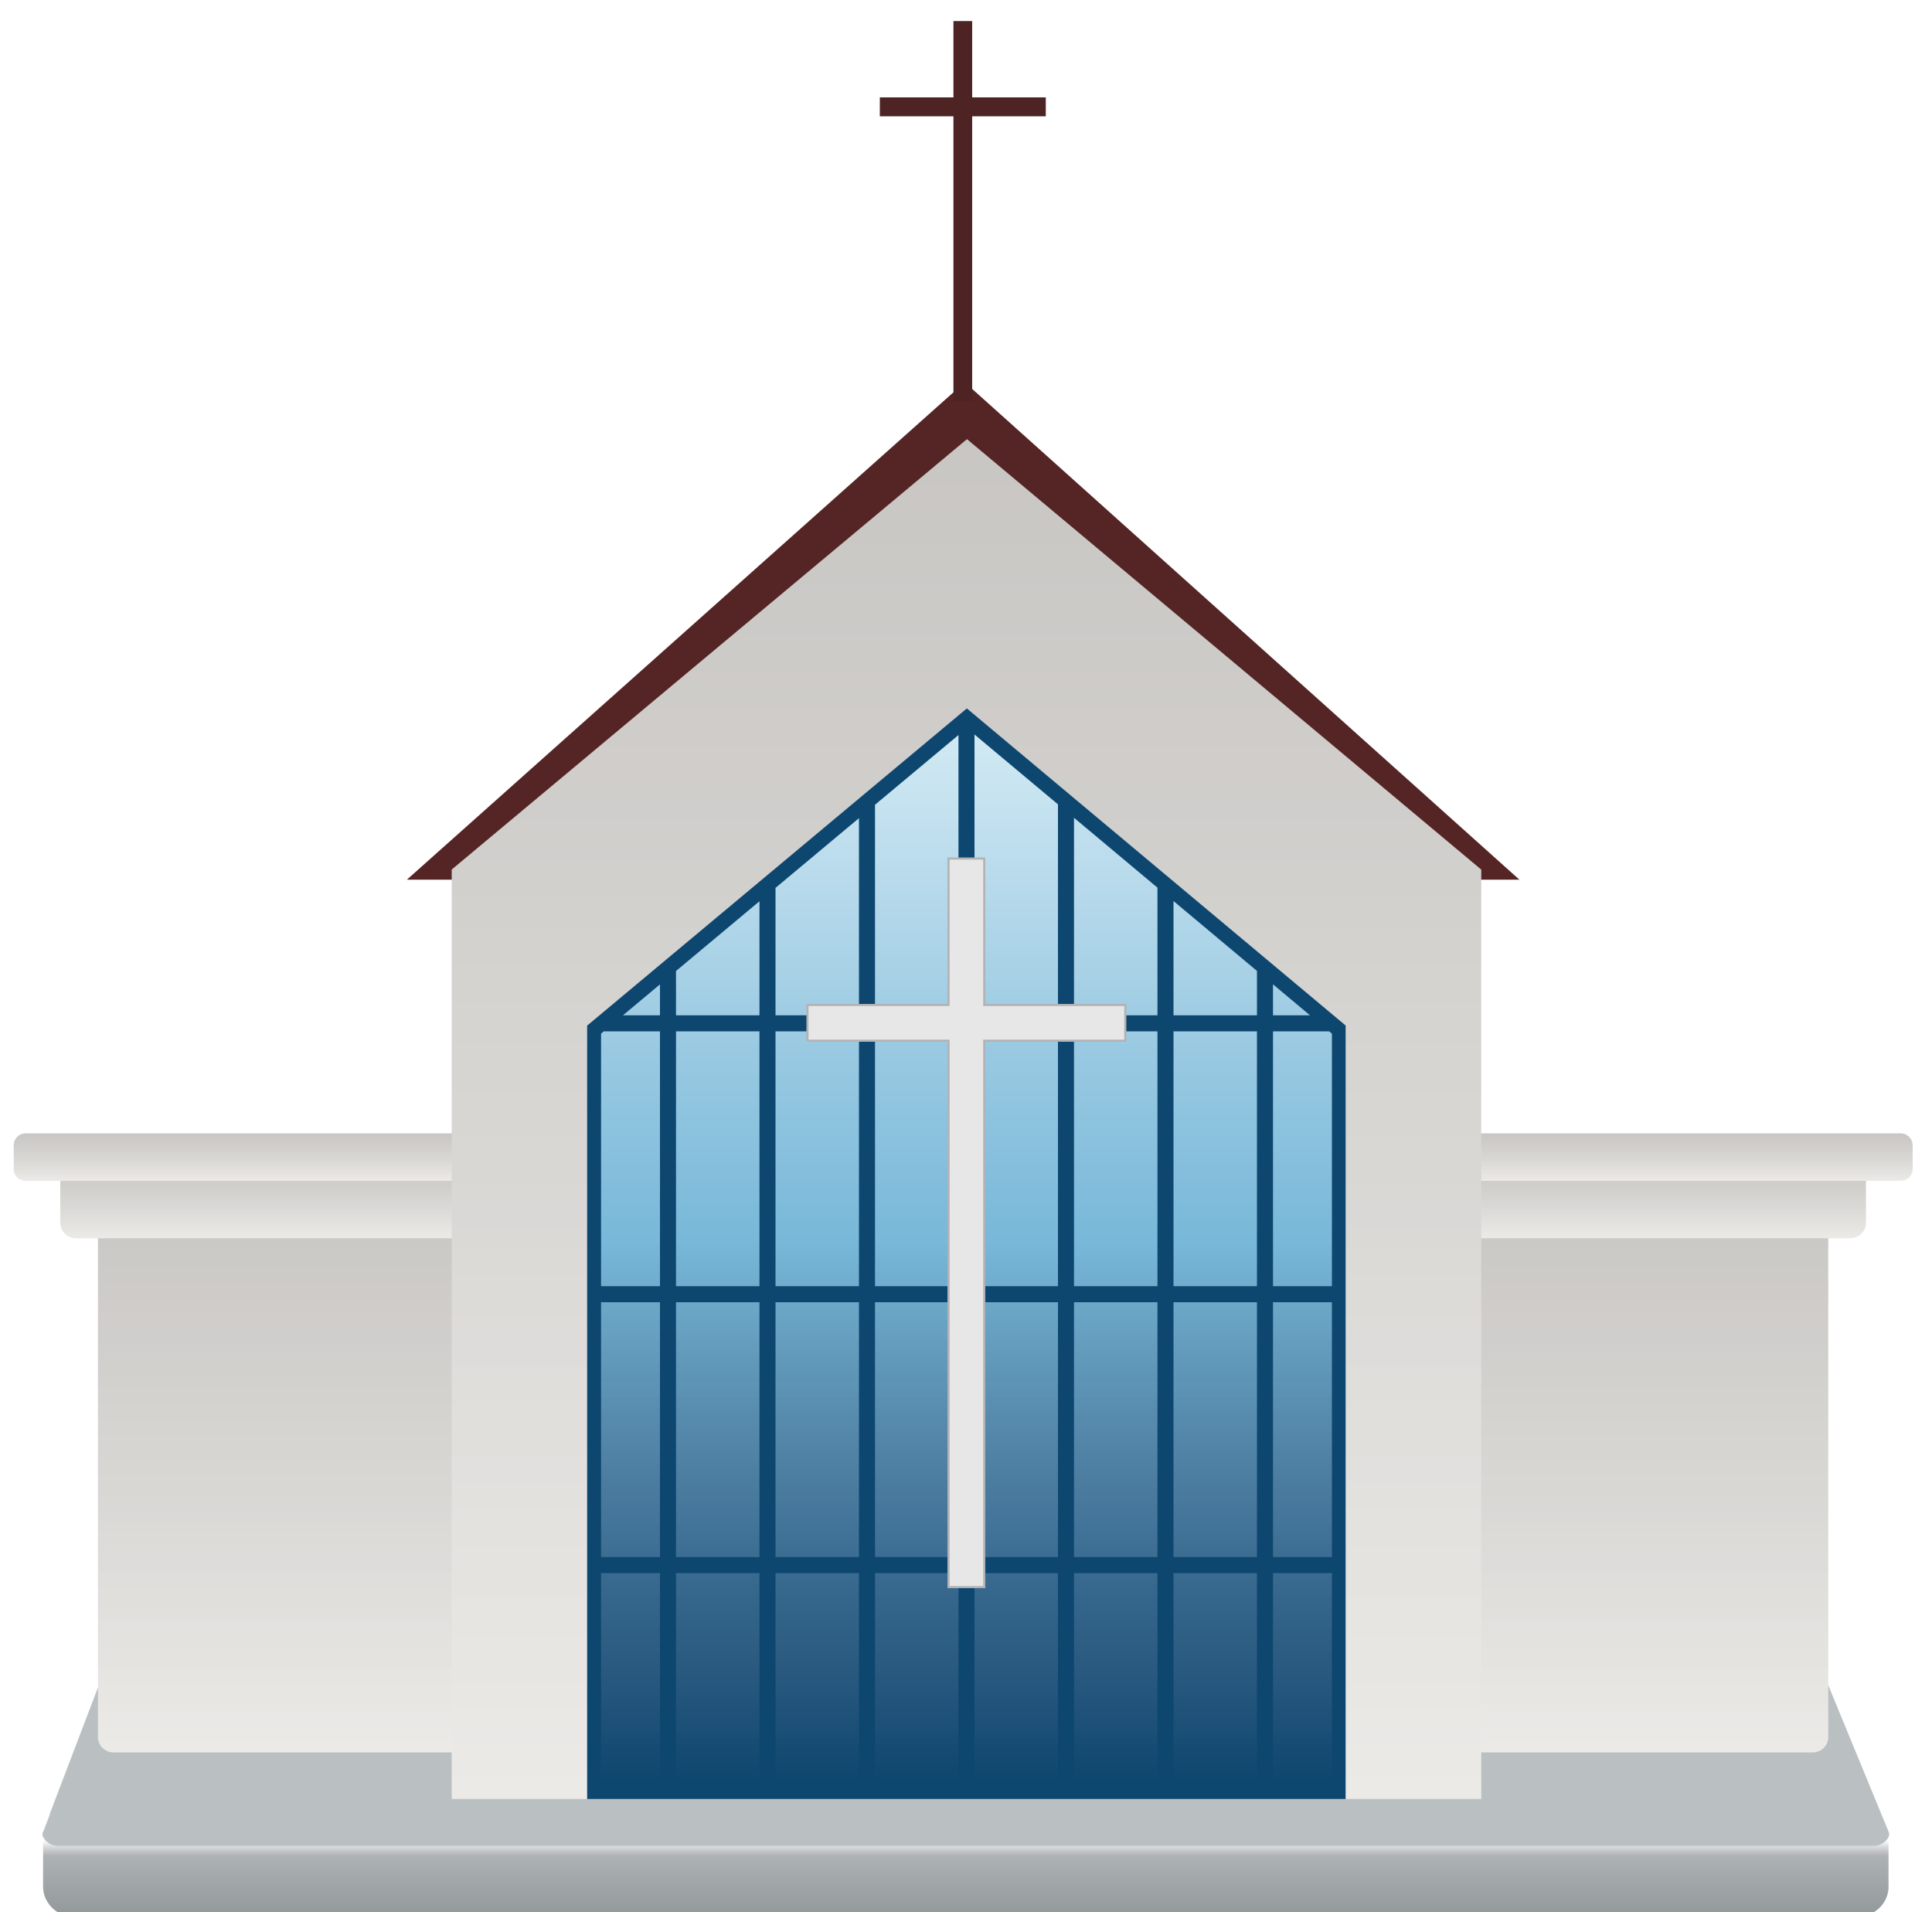 Church open house clipart svg royalty free download Church Building Drawing at GetDrawings.com | Free for personal use ... svg royalty free download